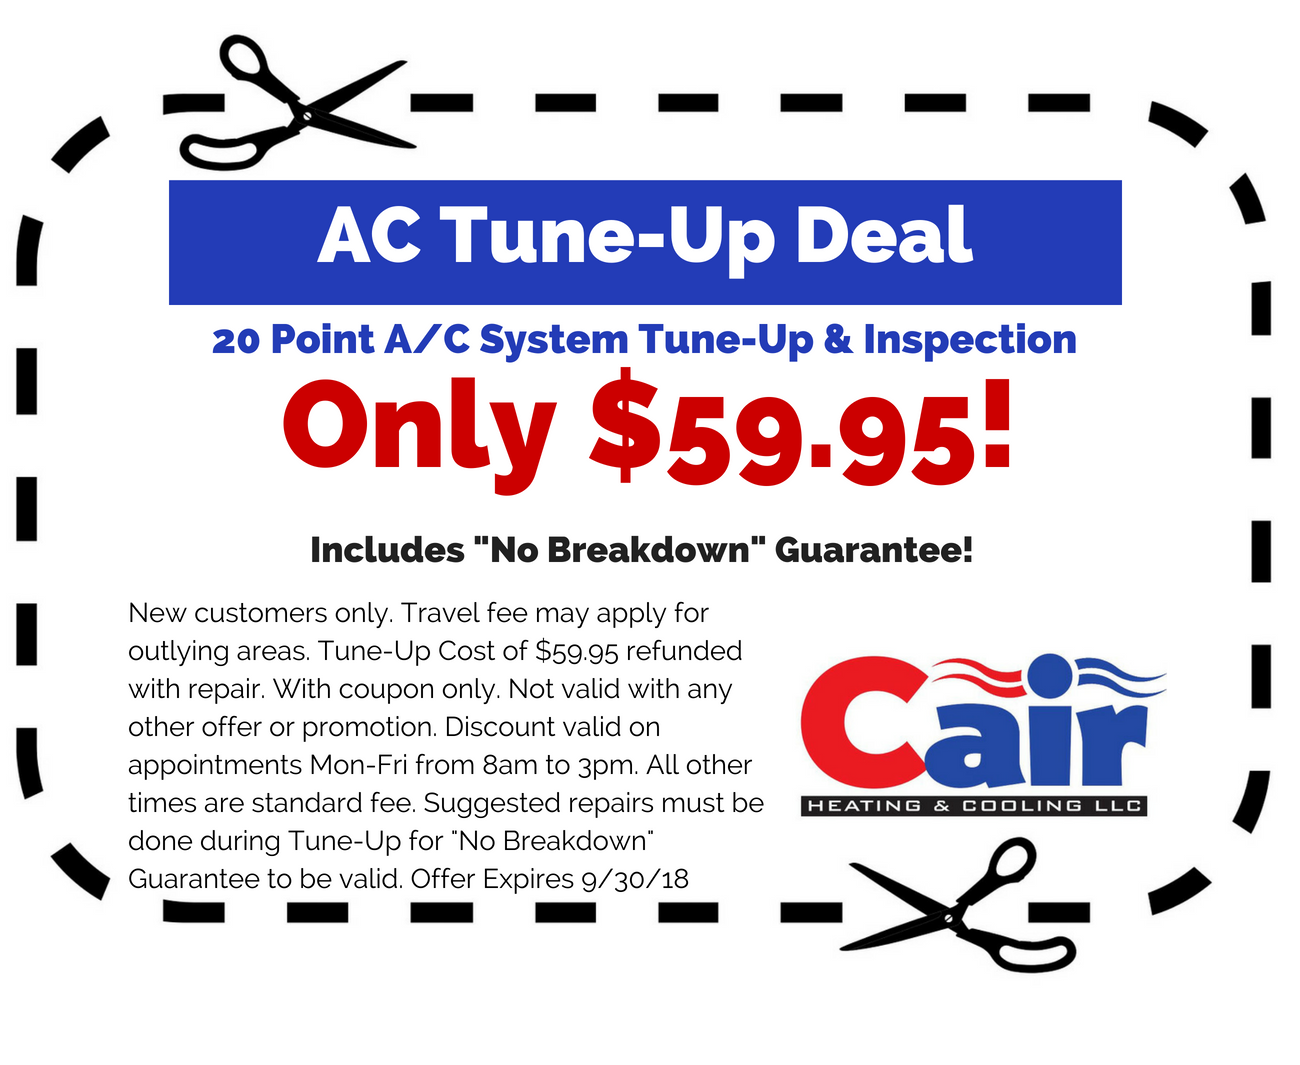 hvac coupons for Cair Heating and Cooling in Louisville, KY